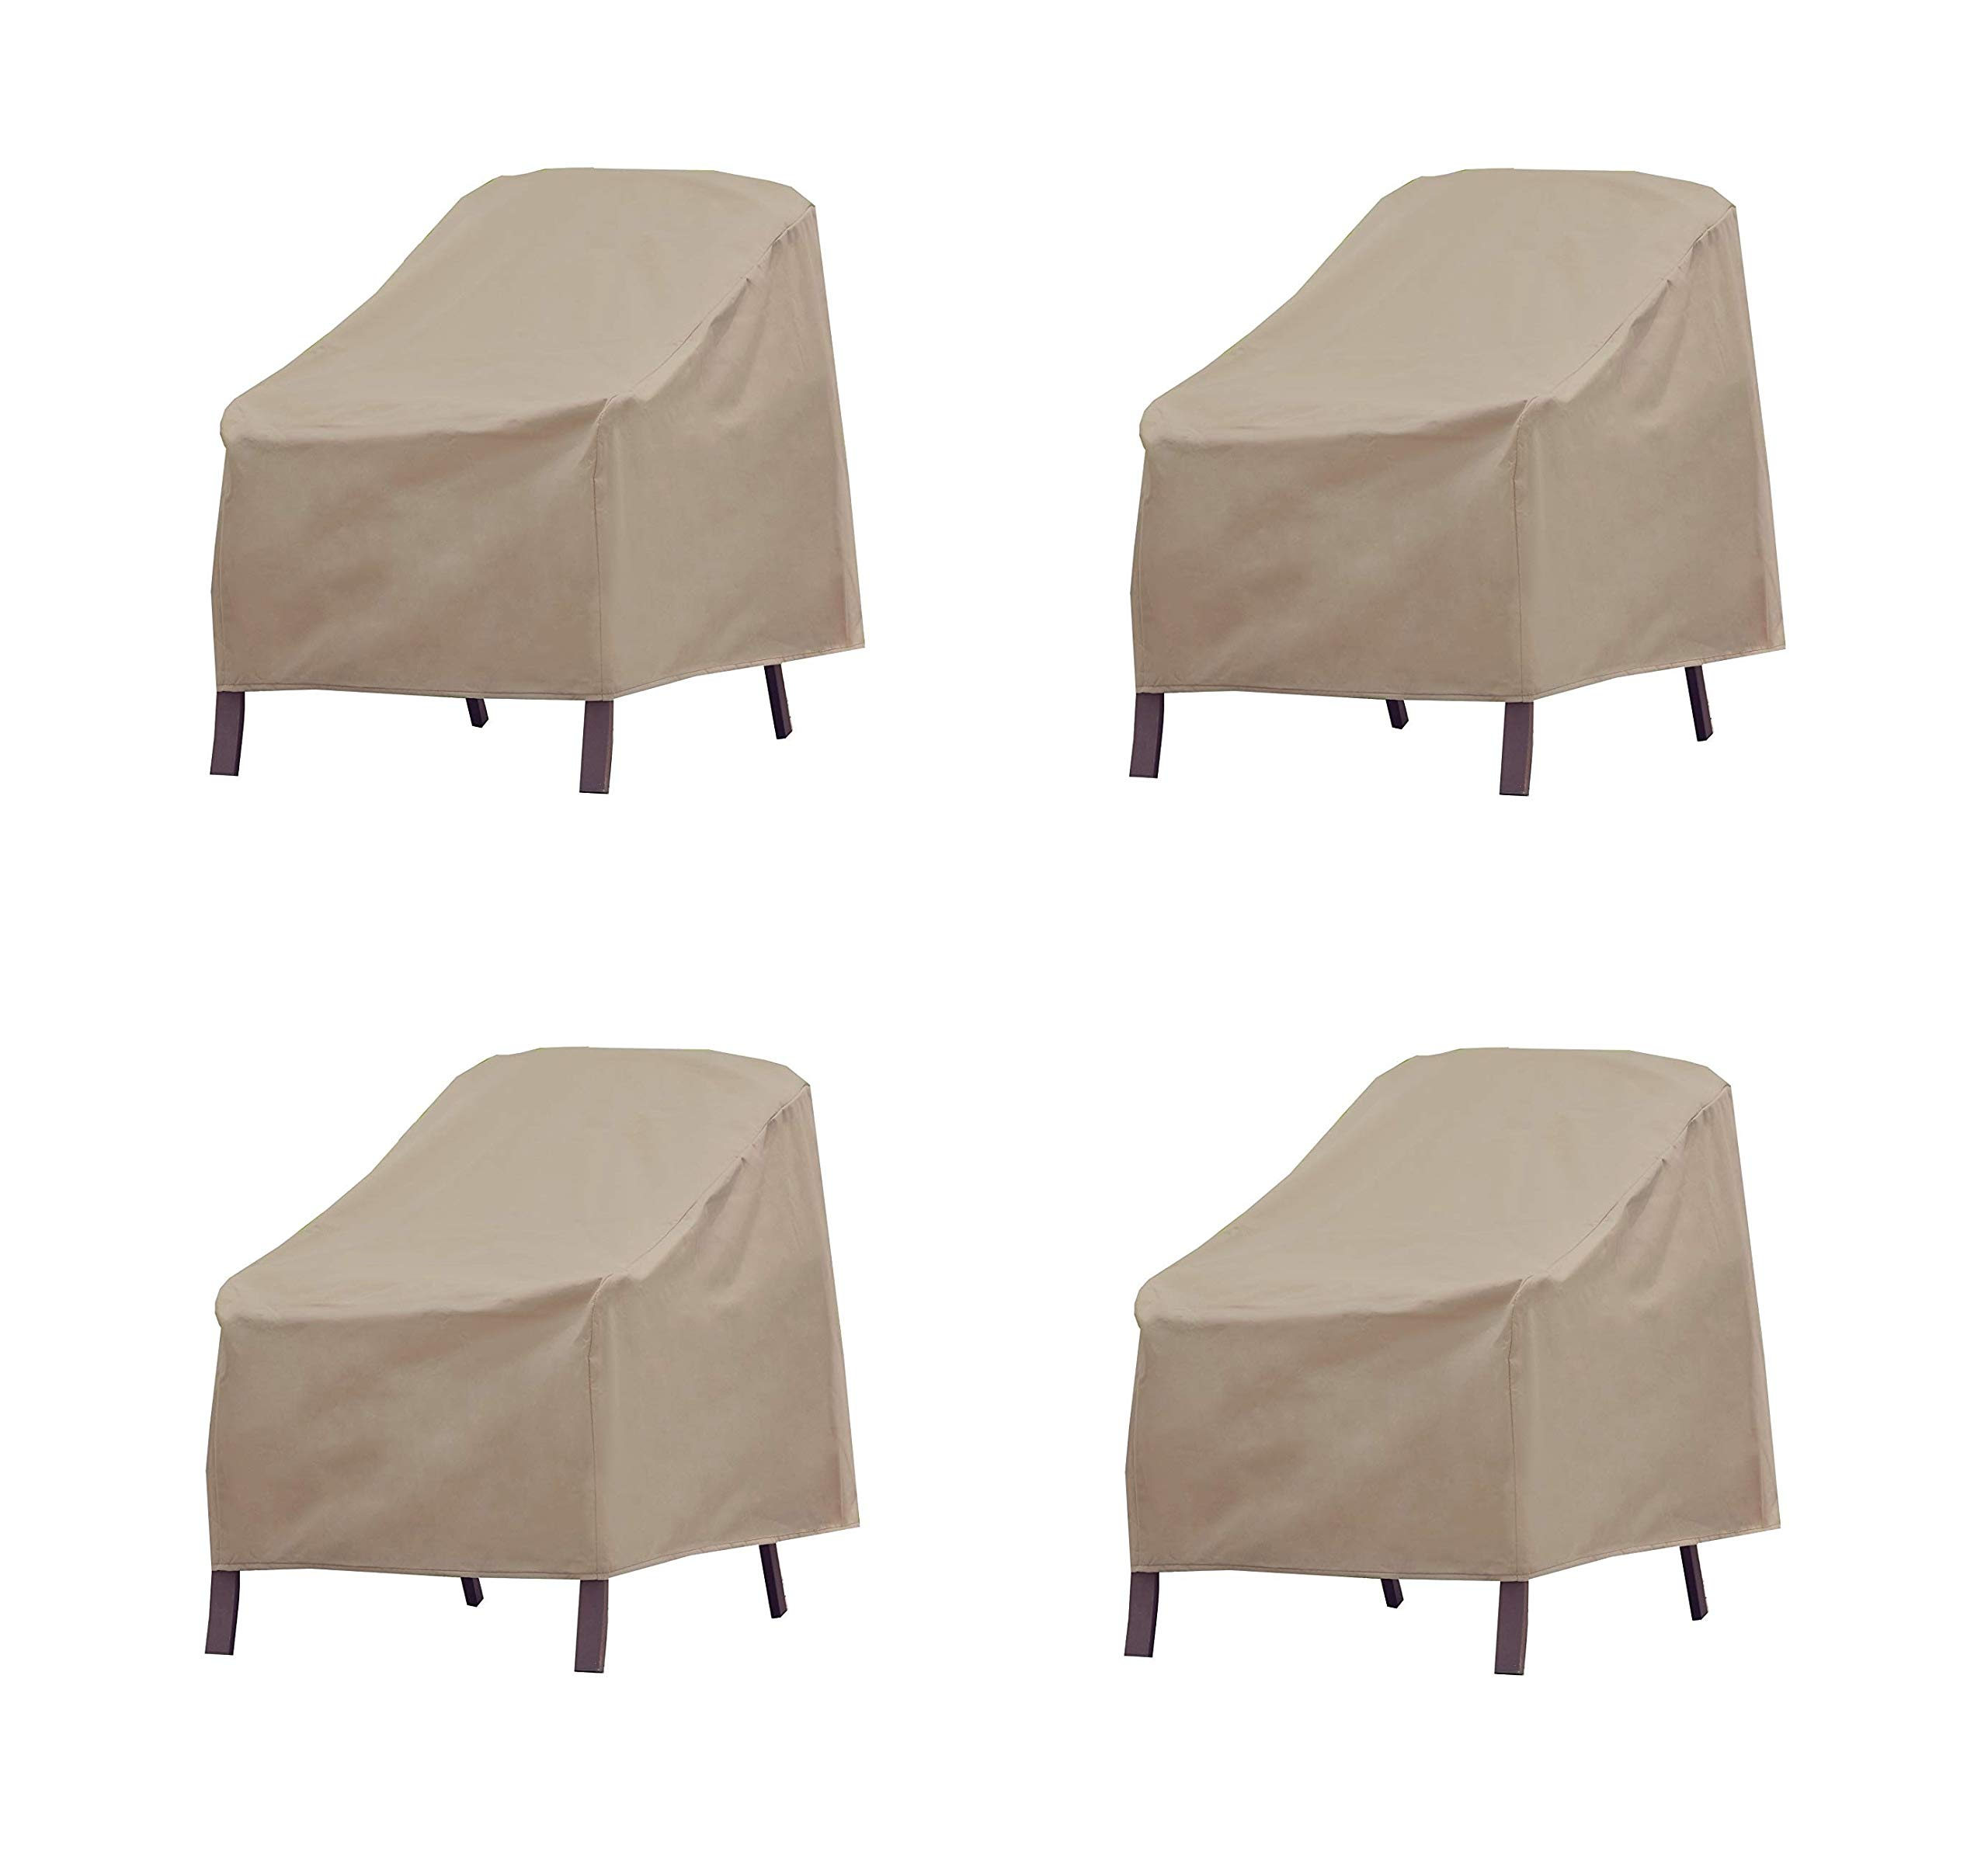 Modern Leisure Patio Furniture Chair Cover, Weather & Waterproof Patio Chair Cover (Pack of 4)